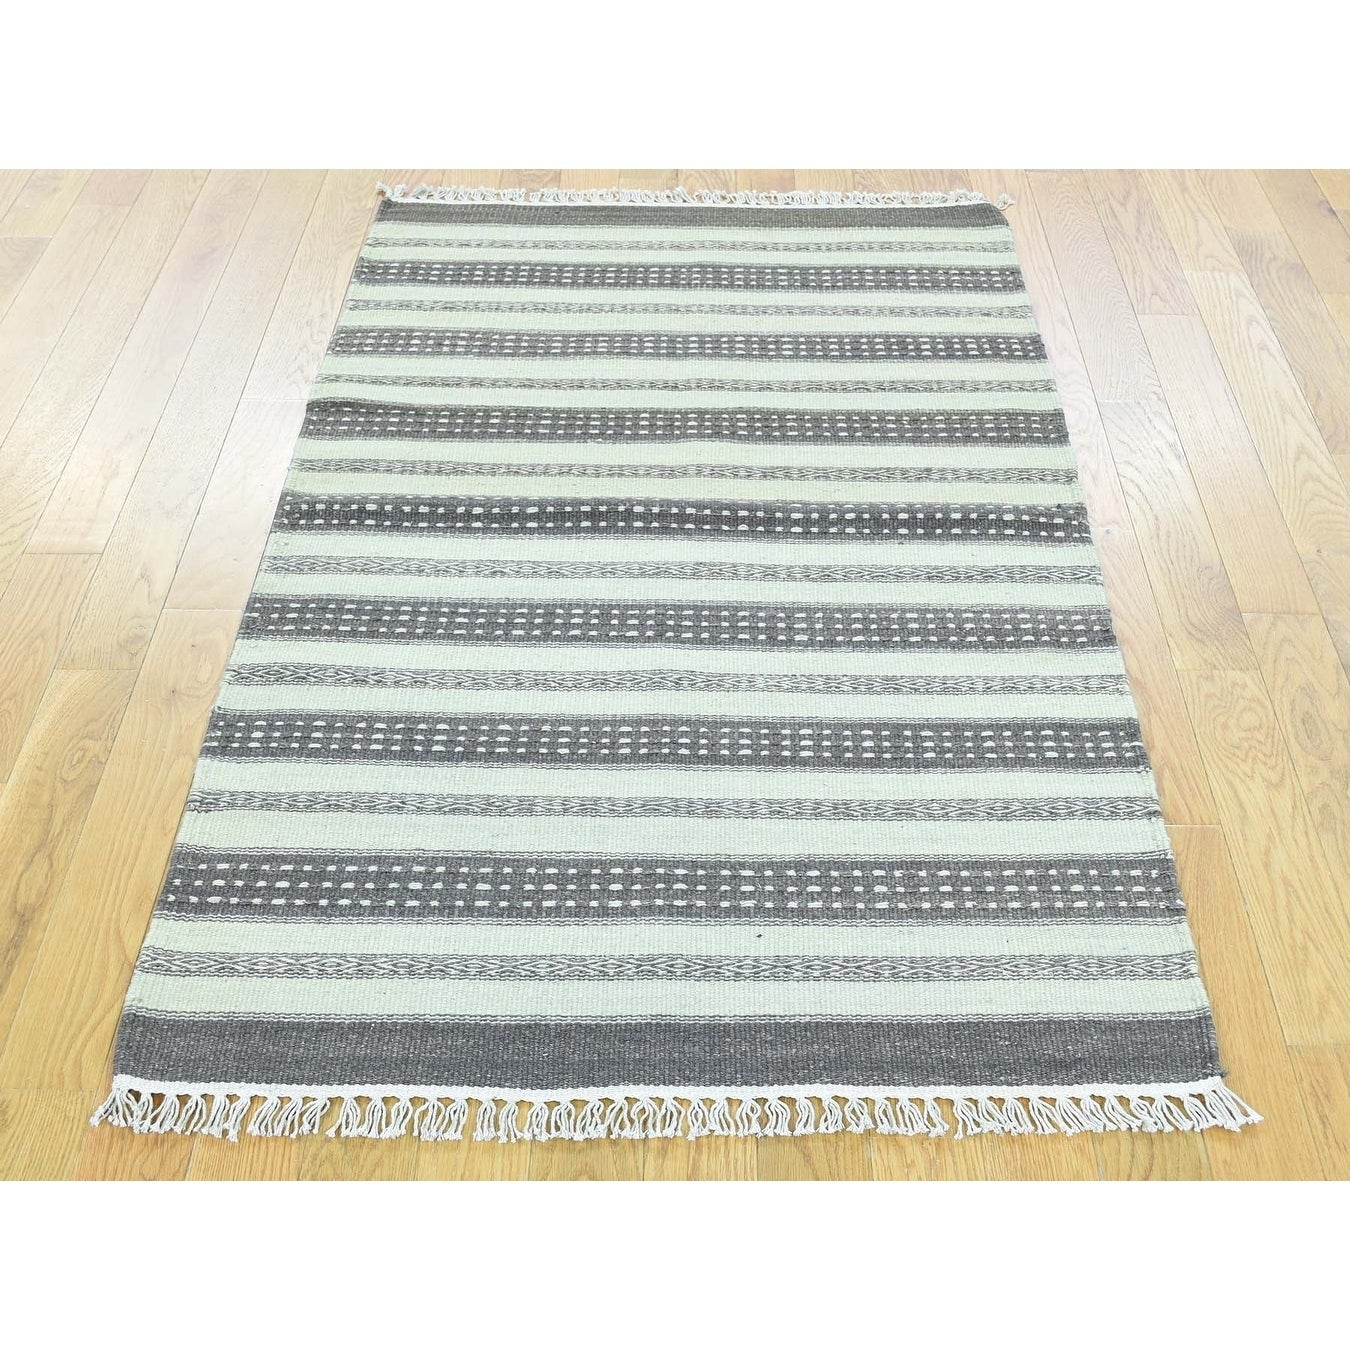 Hand Knotted Multicolored Flat Weave with Wool Oriental Rug - 210 x 410